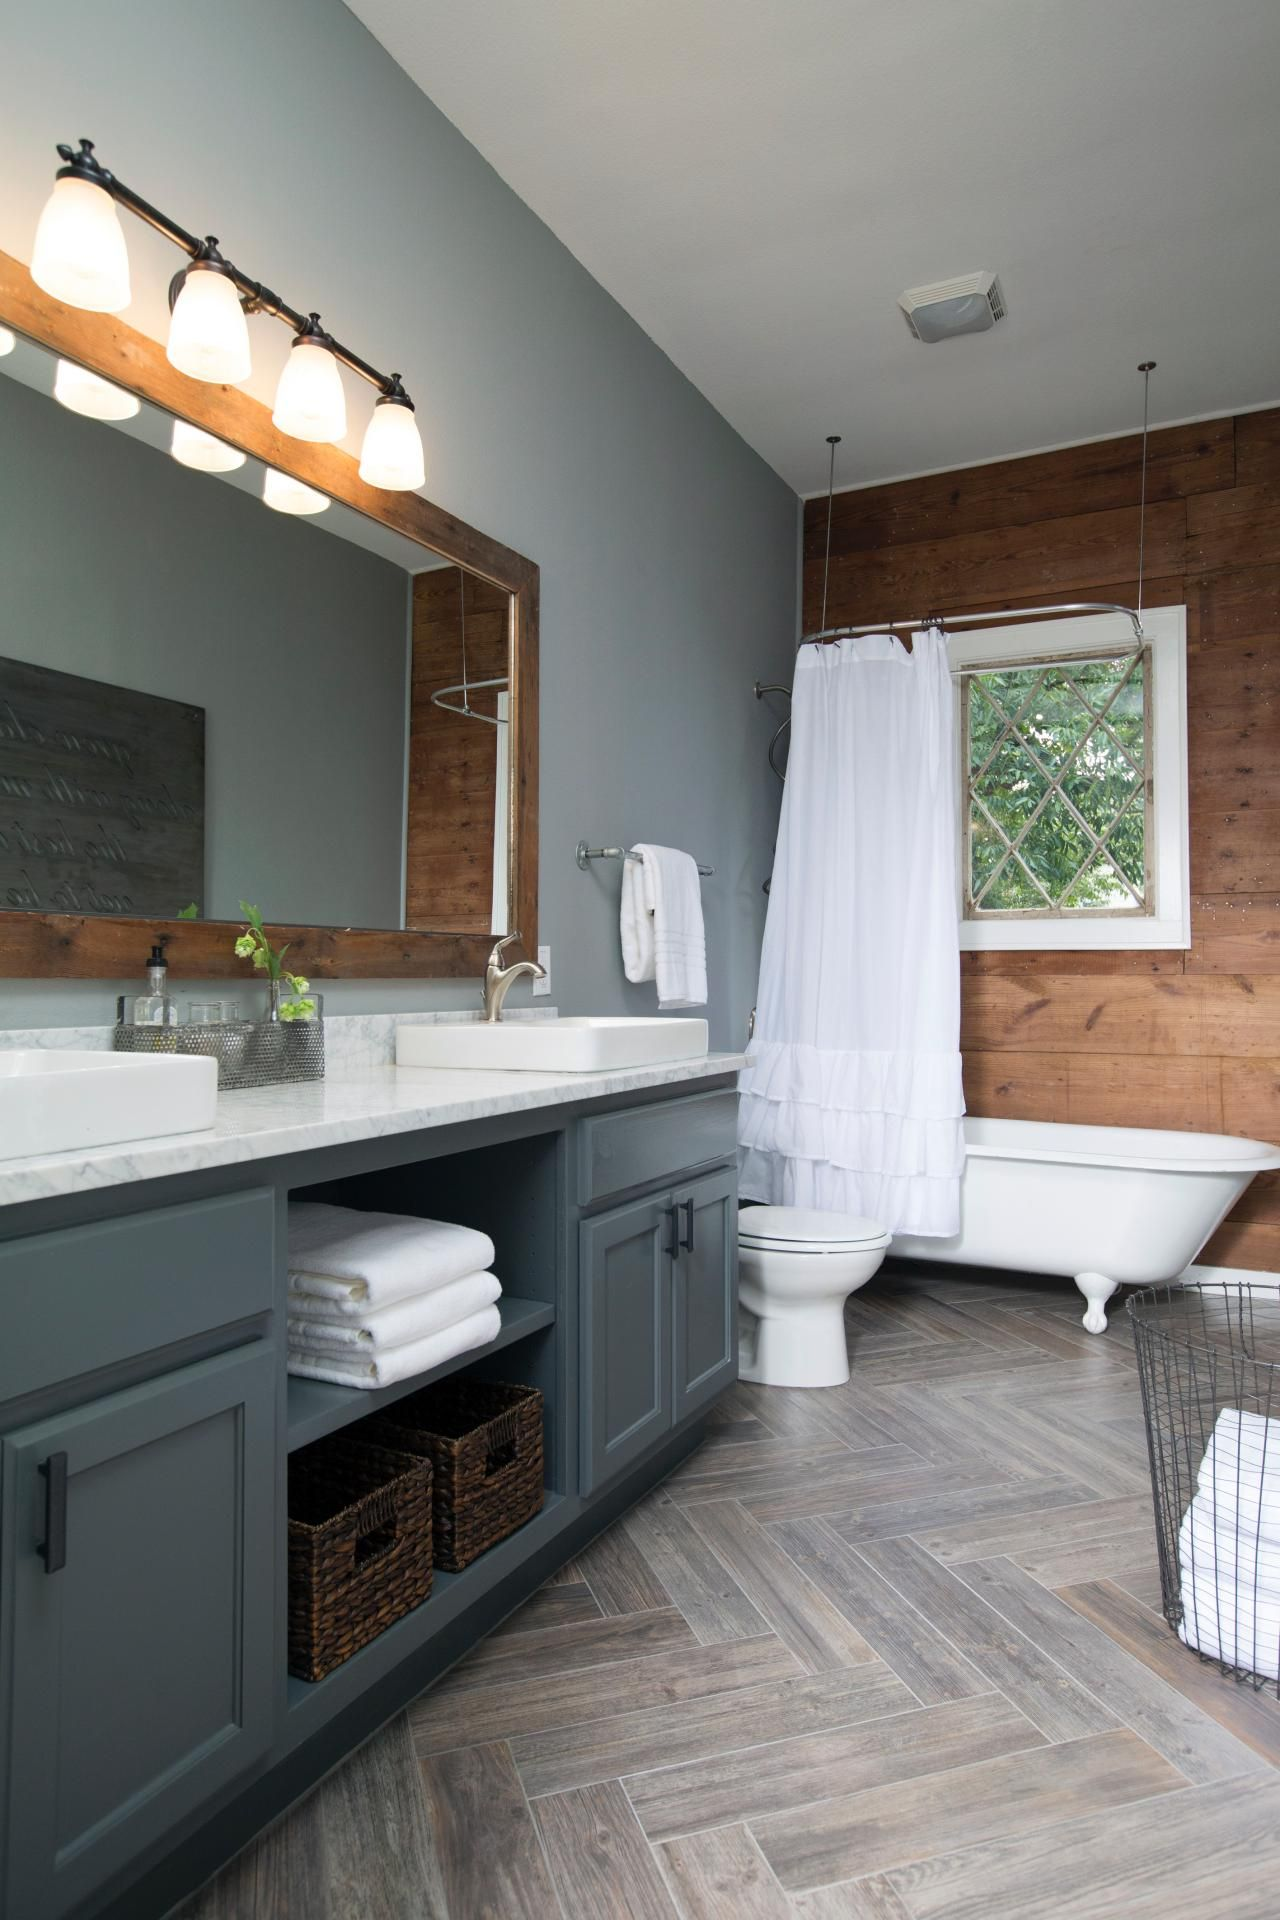 chip and joanna gaines decked out this master bathroom with new gray paint and a shiplap